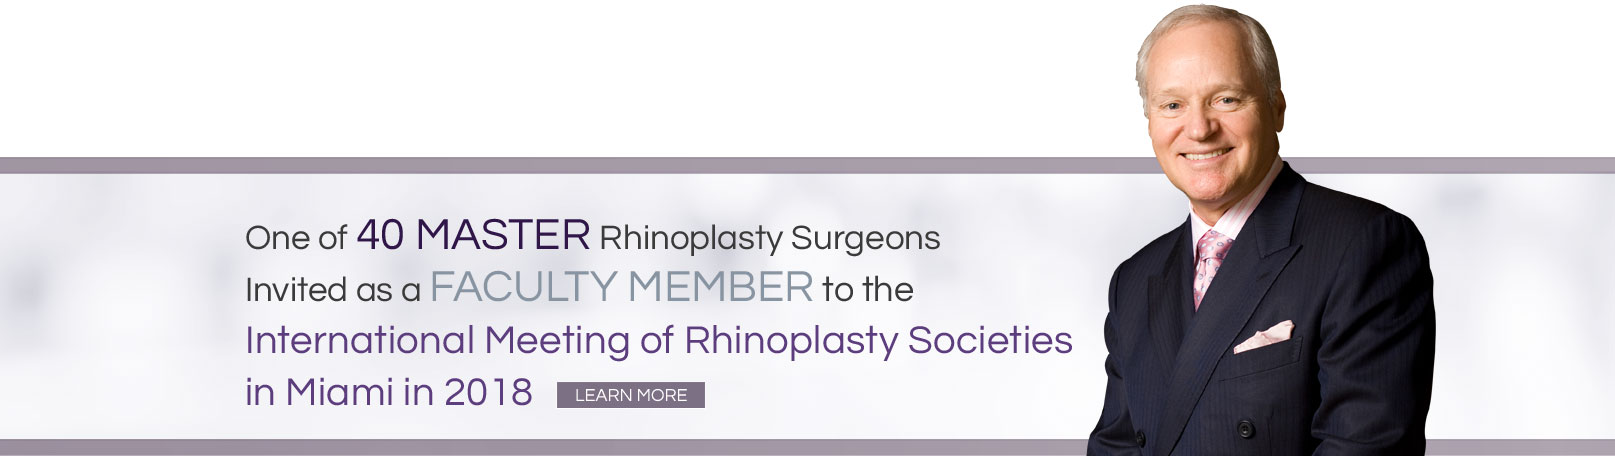 One of 40 master rhinoplasty surgeons invited as a faculty member to the International Meeting of Rhinoplasty Specialists in Miami in 2018